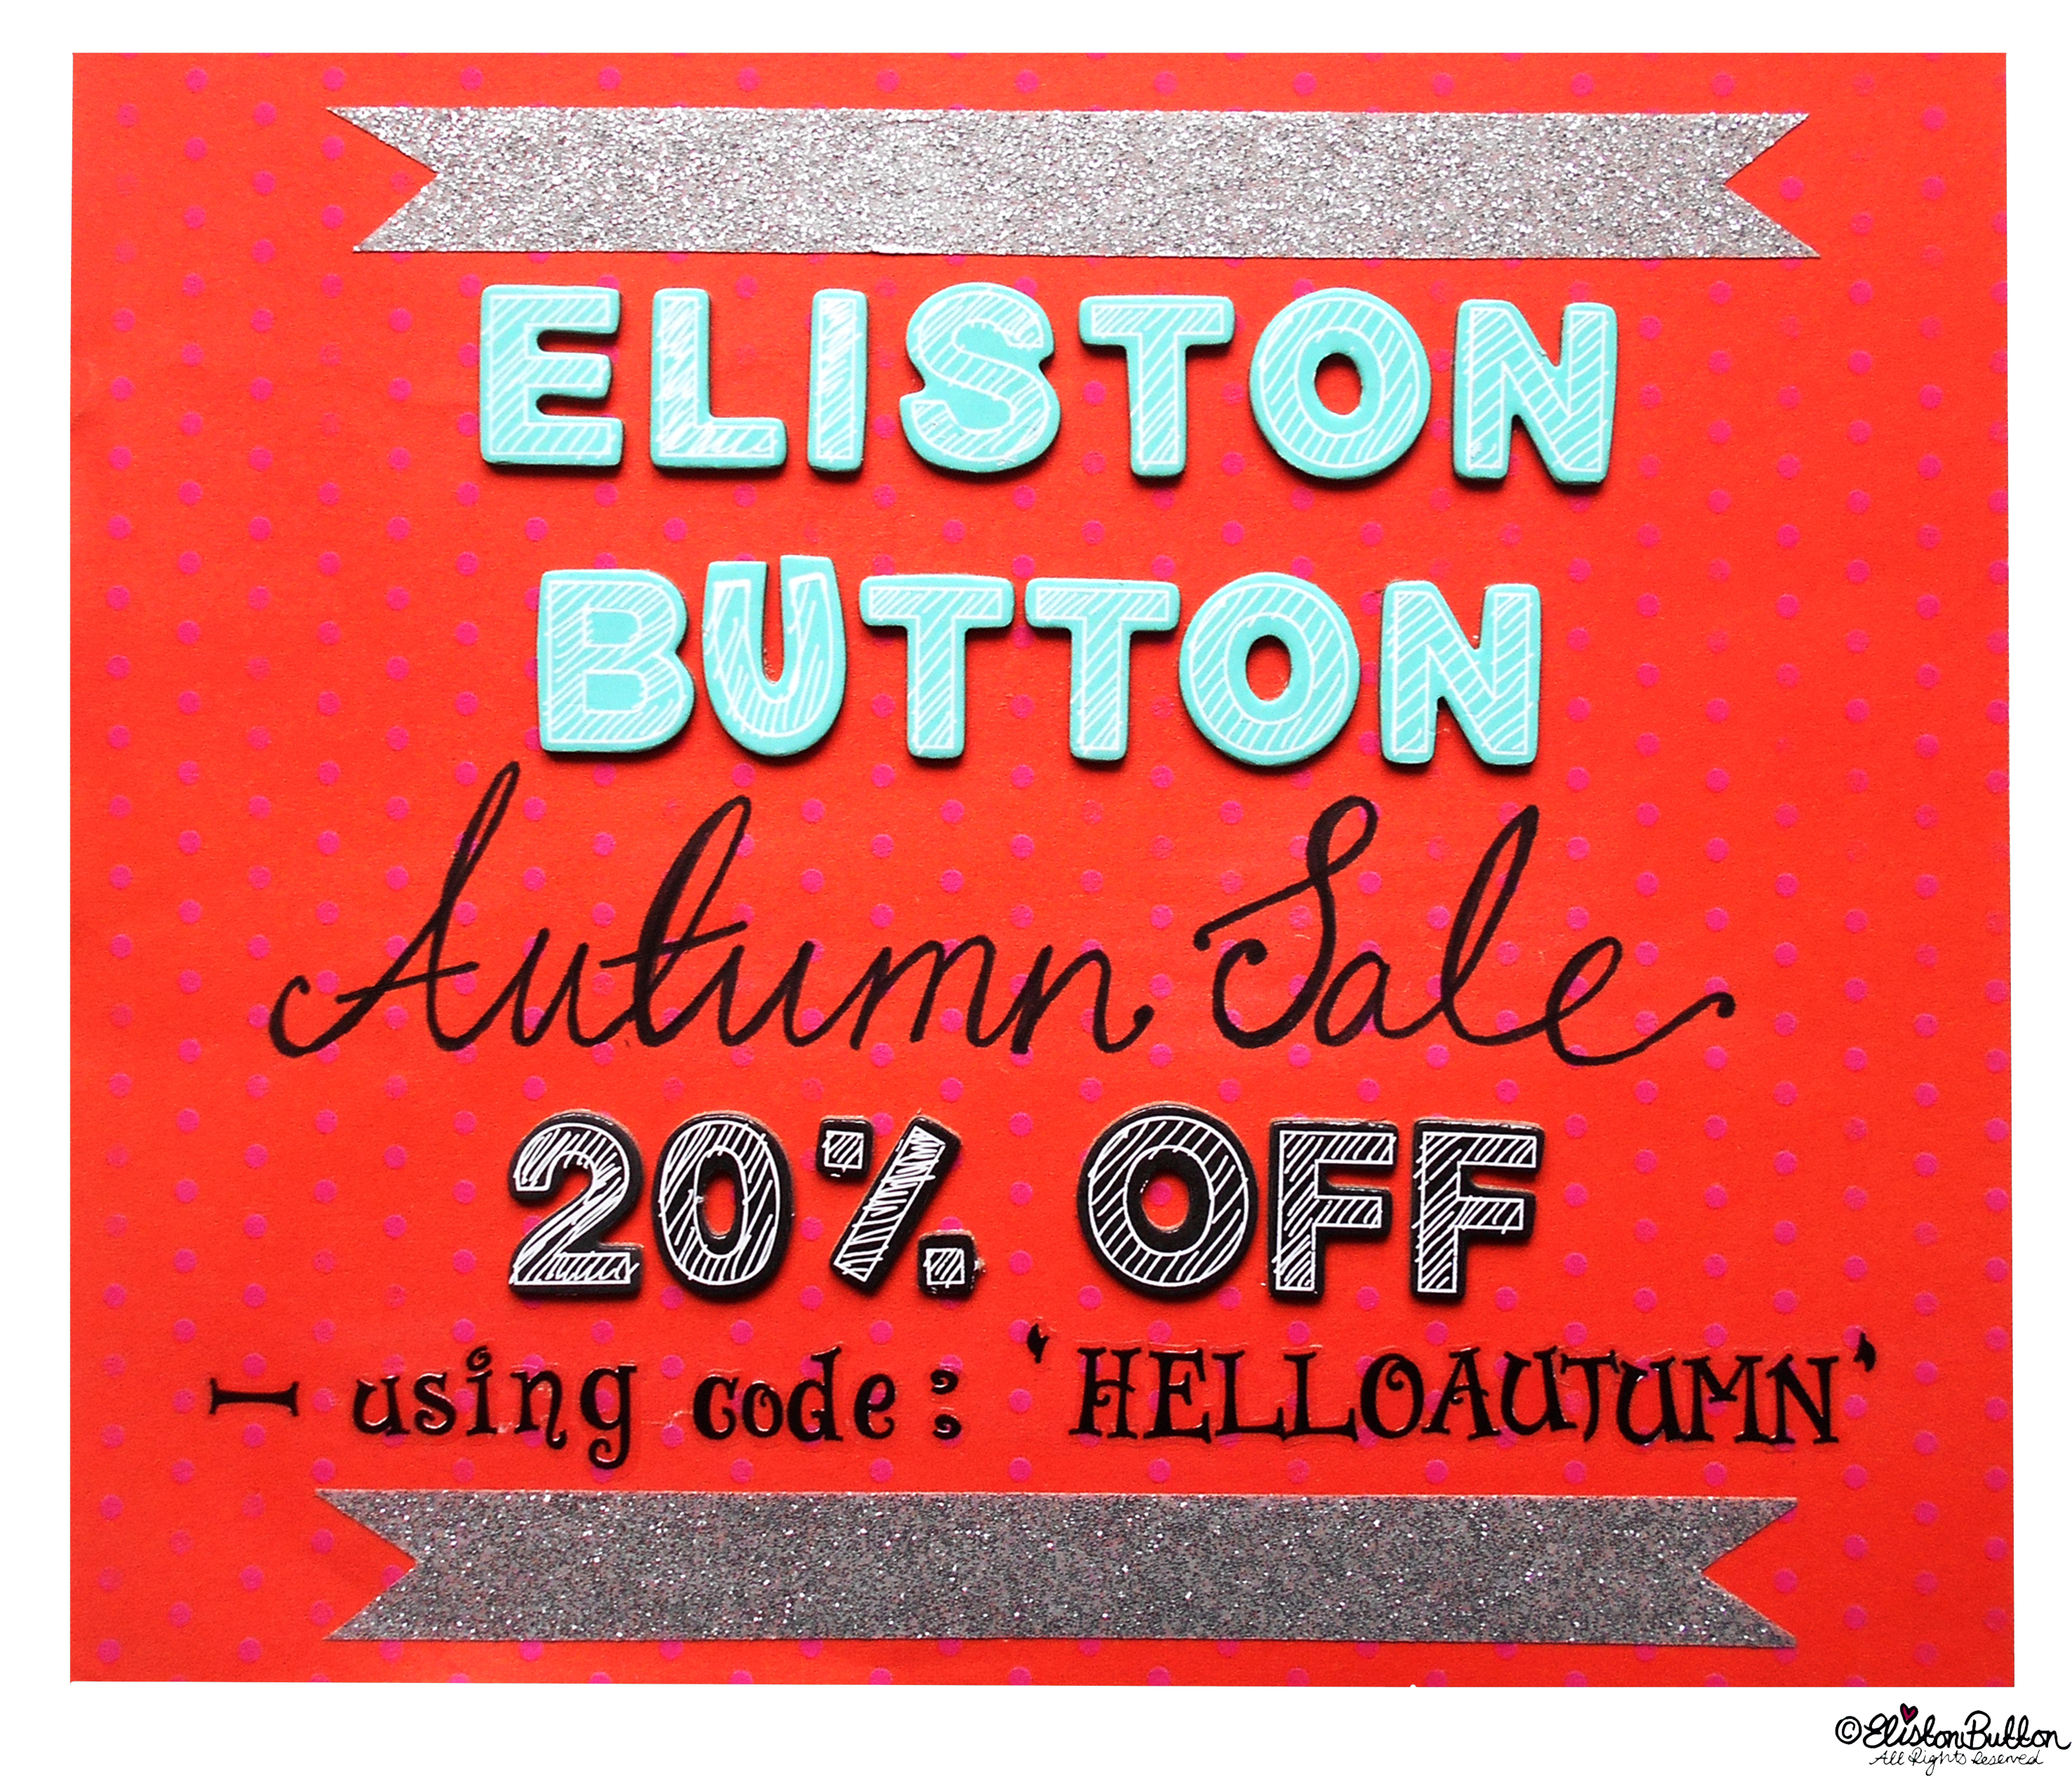 Eliston Button Autumn Sale 2014 - The Great British Seaside (and an Eliston Button Autumn Sale) at www.elistonbutton.com - Eliston Button - That Crafty Kid – Art, Design, Craft & Adventure.